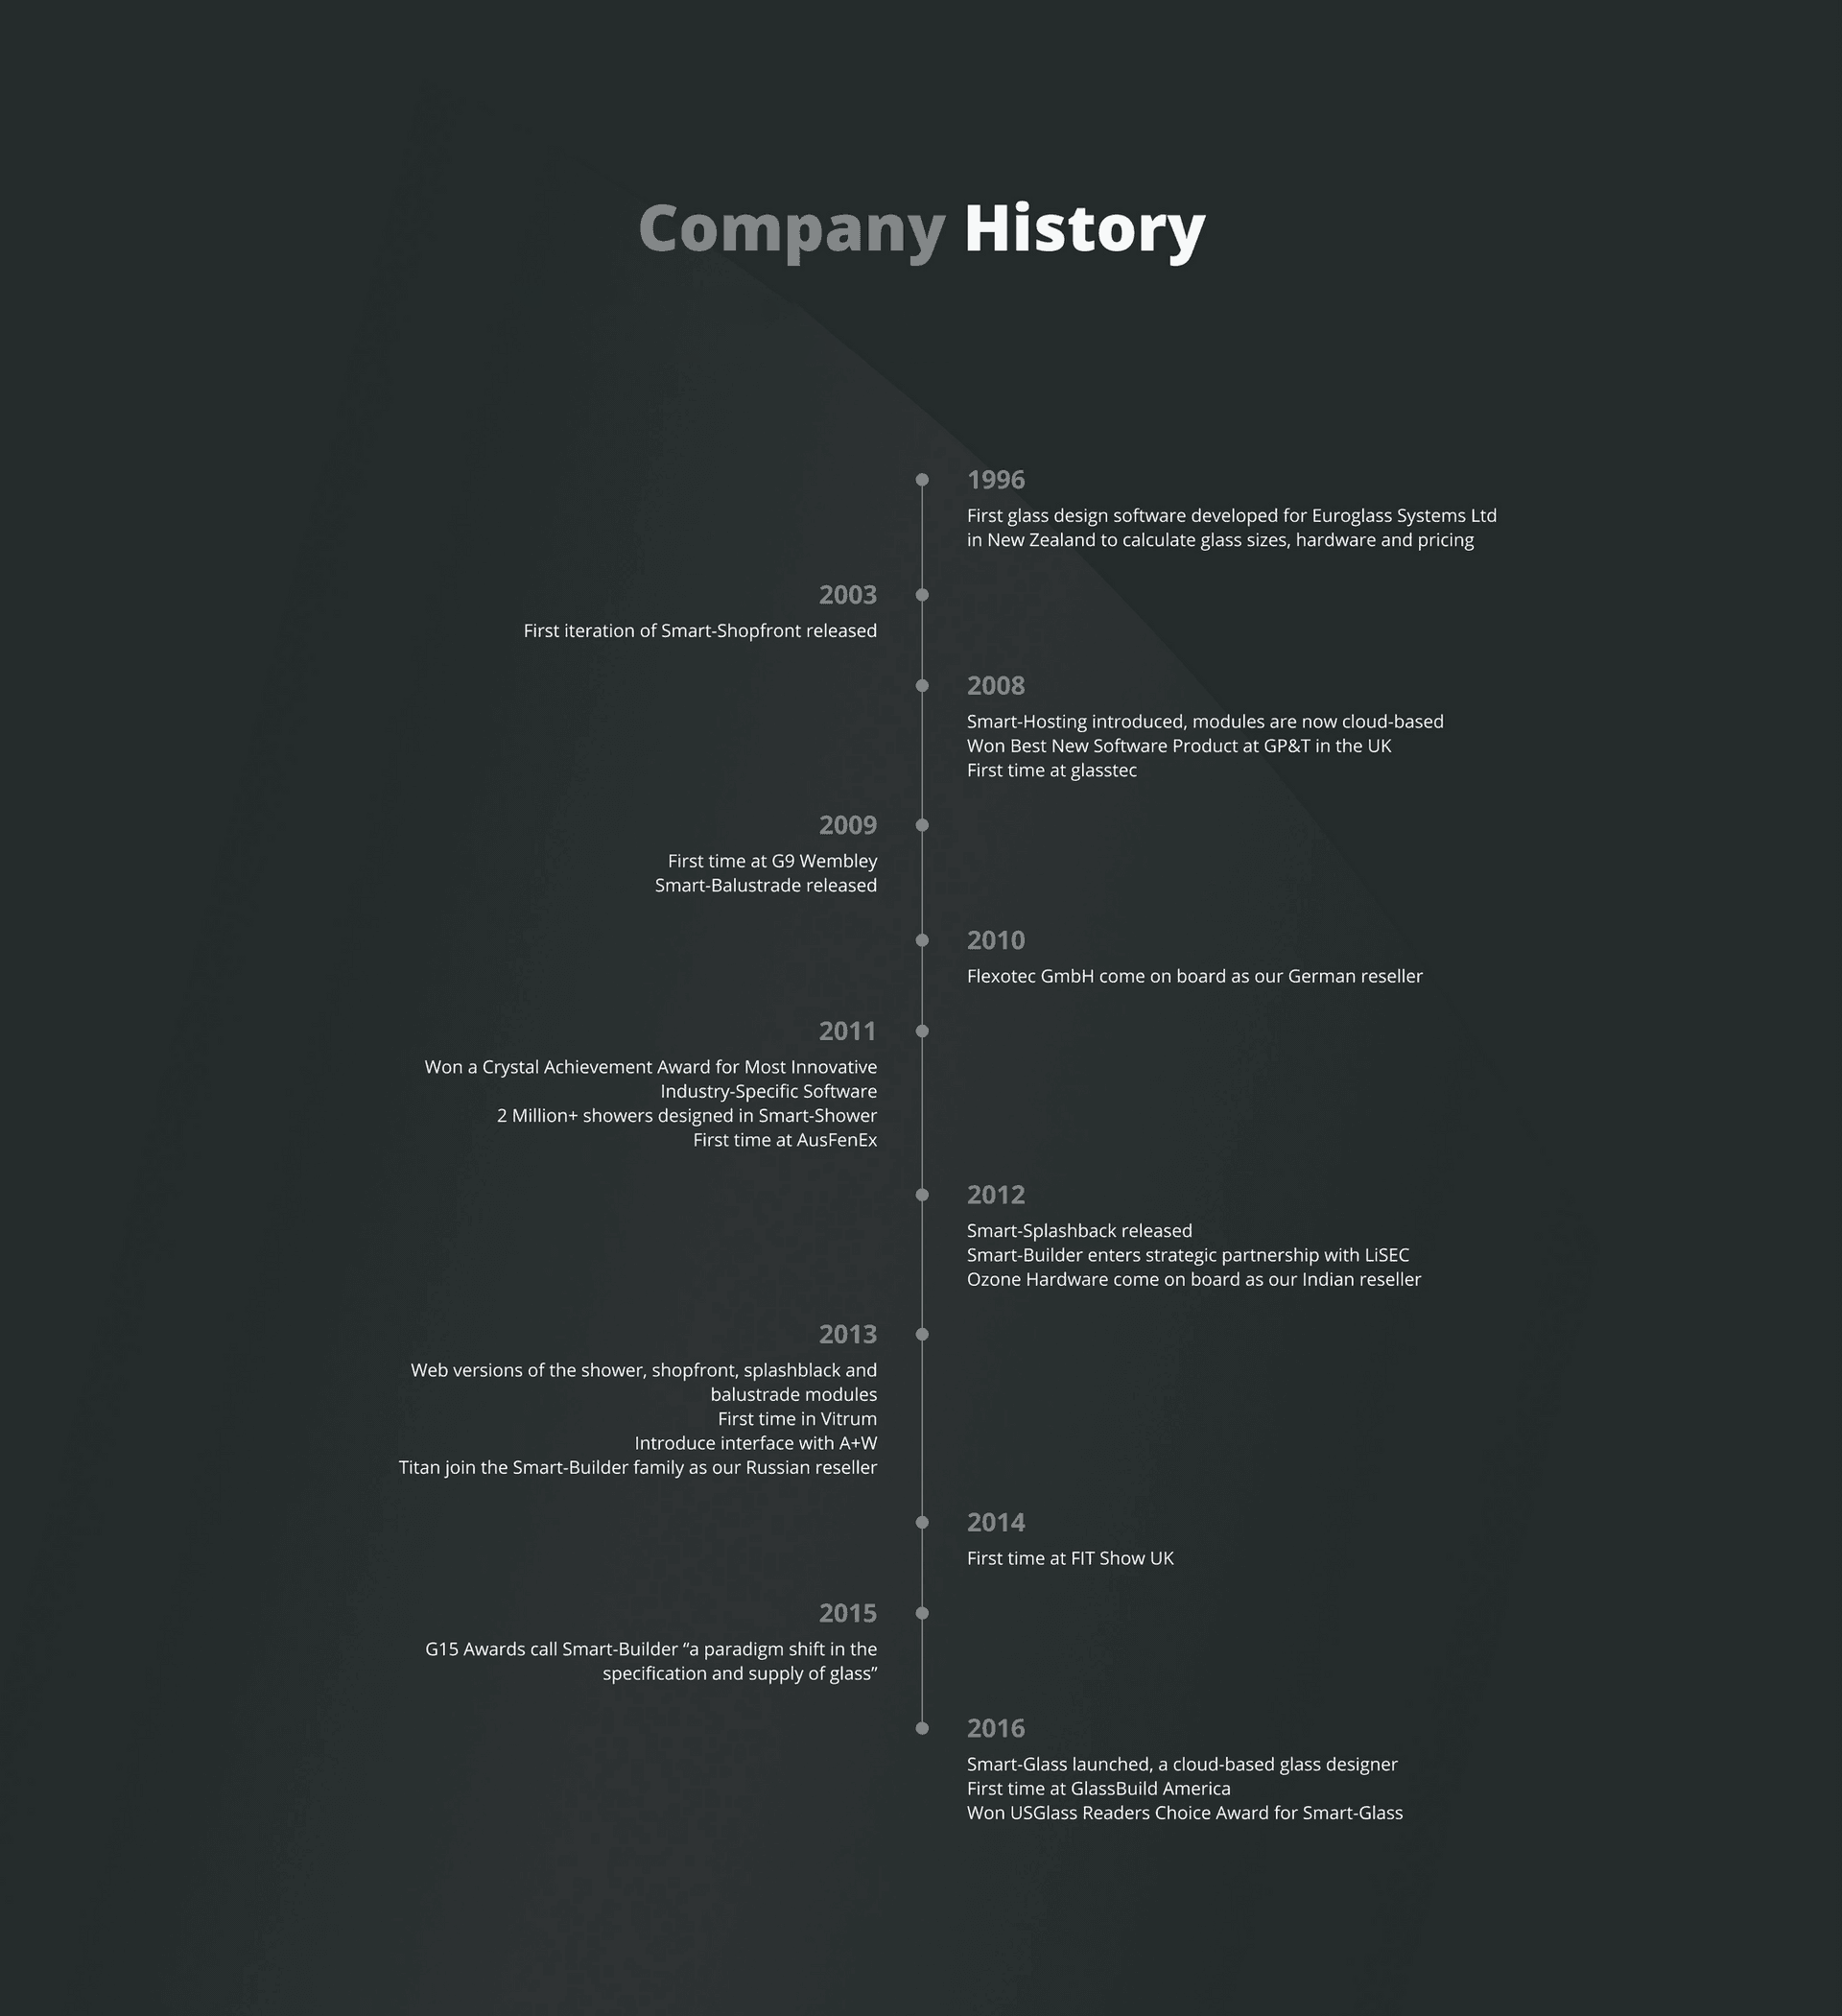 Smart Builder Company History - making great glass software for over 20 years